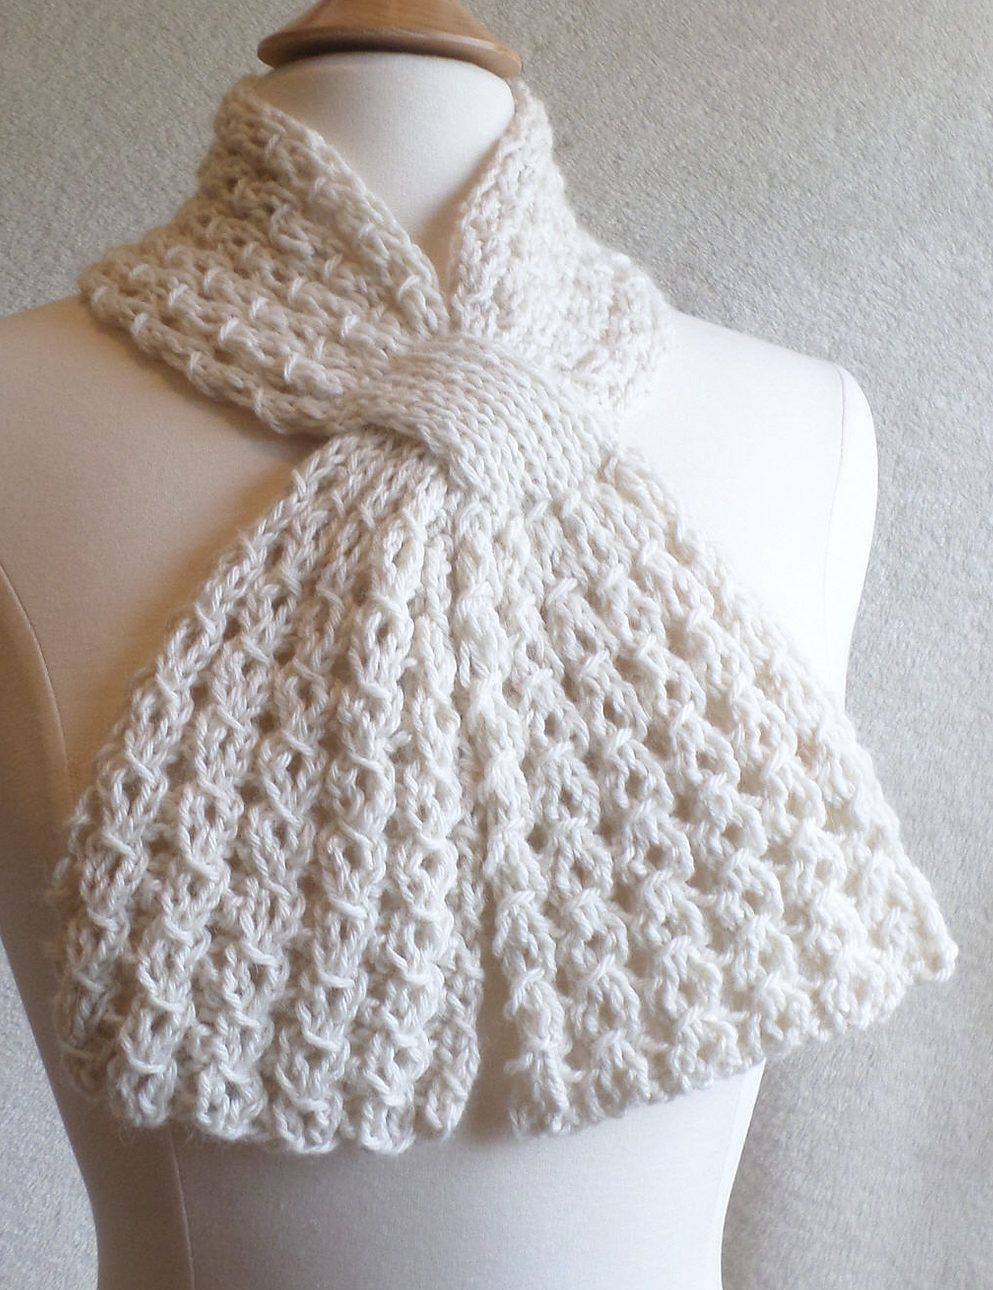 Free Knitting Pattern For 4 Row Repeat Loopy Lace Scarf This